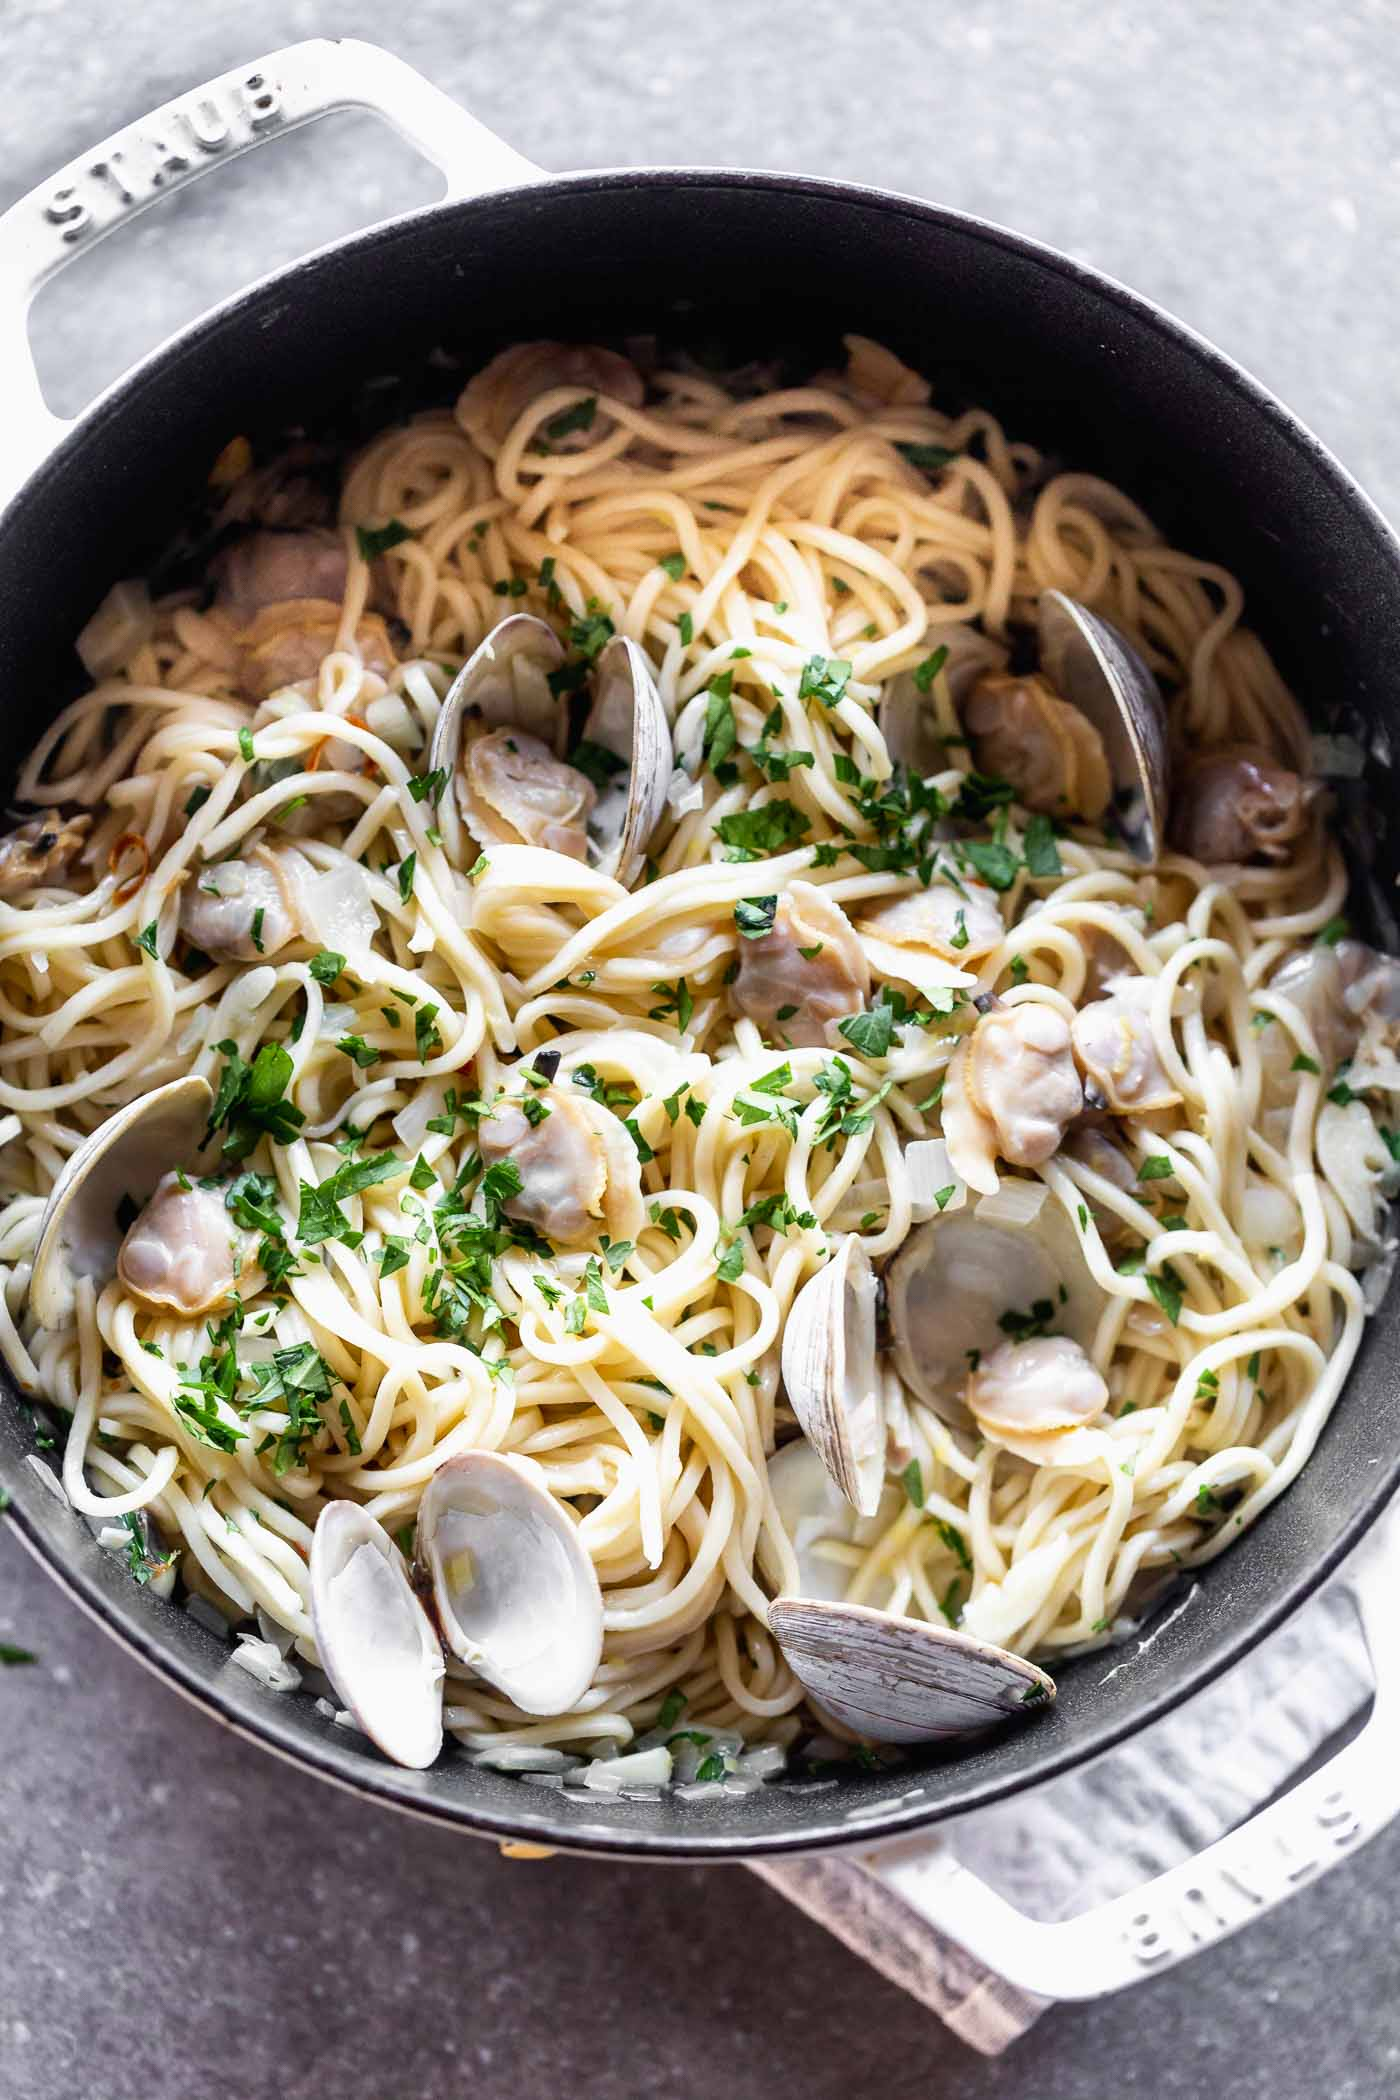 If you're a fan of light, ever-so-subtle seafood pasta, then this Easy Linguini with Clams is right in your wheelhouse. With a lemon and garlic-forward sauce, hints of red pepper flake, and delicate shallots, this meal has quickly become one of our favorites. It's also perfect for entertaining, which we love.